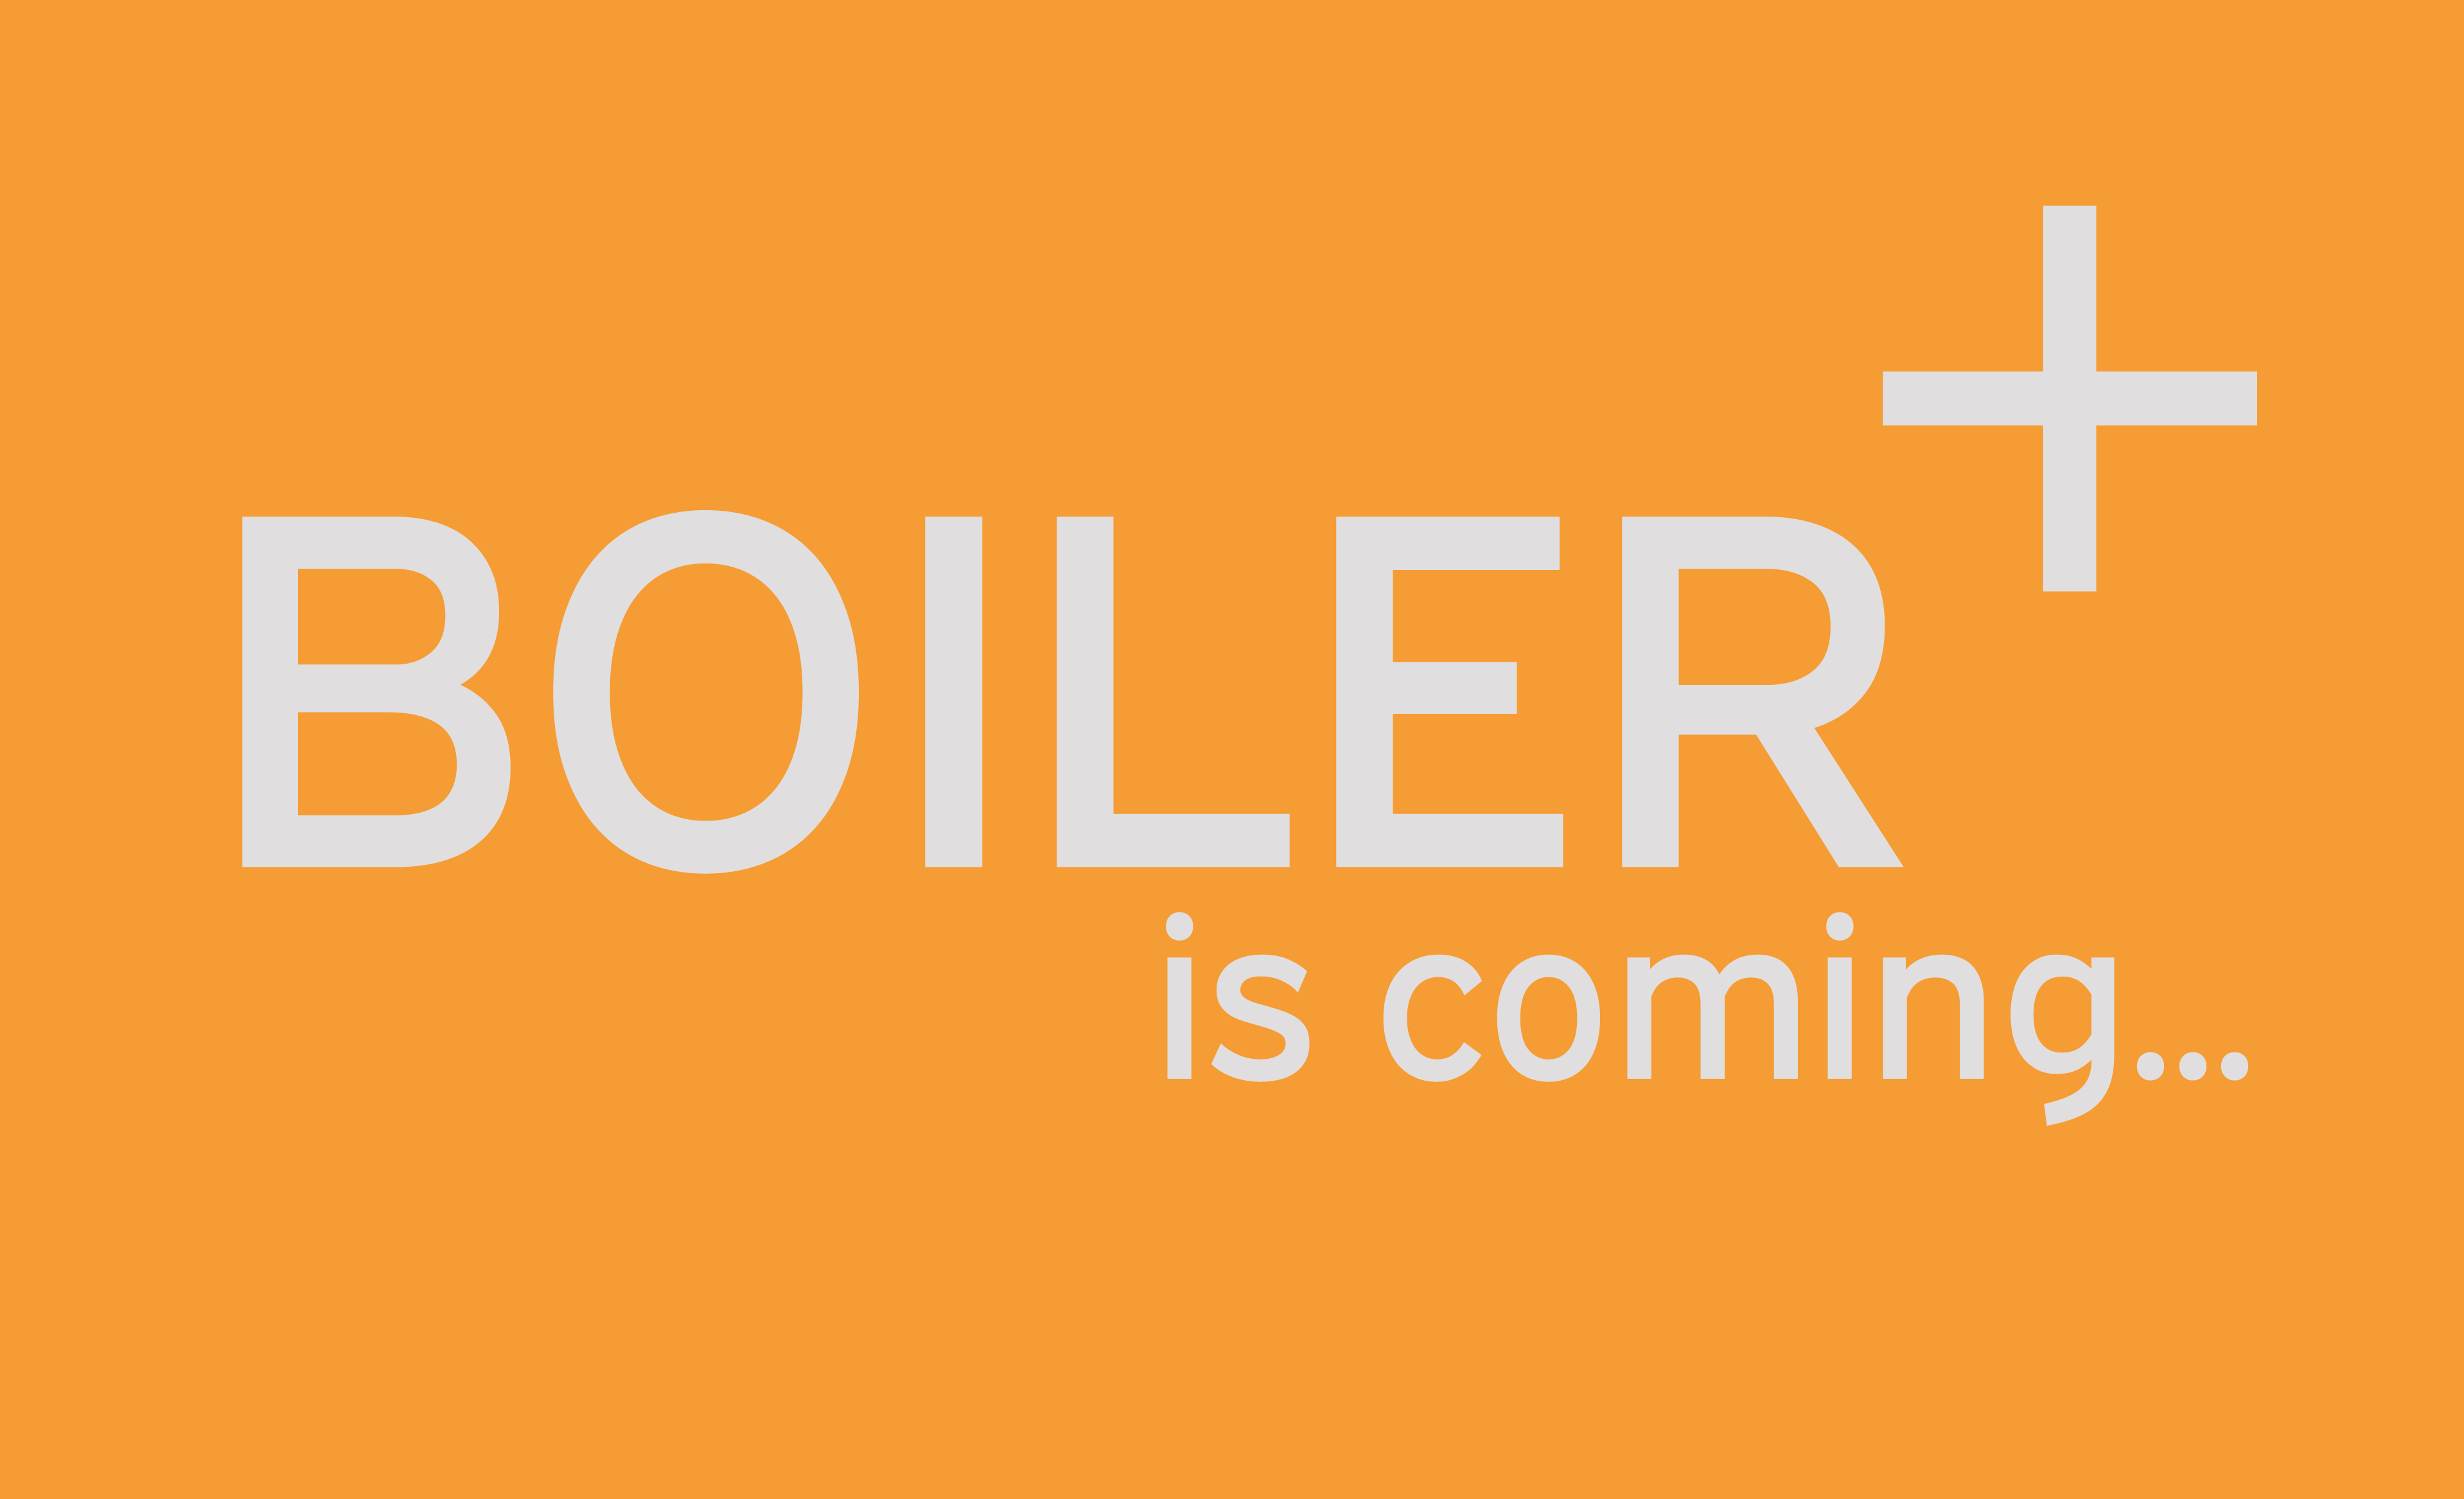 Boiler Plus is coming April 2018